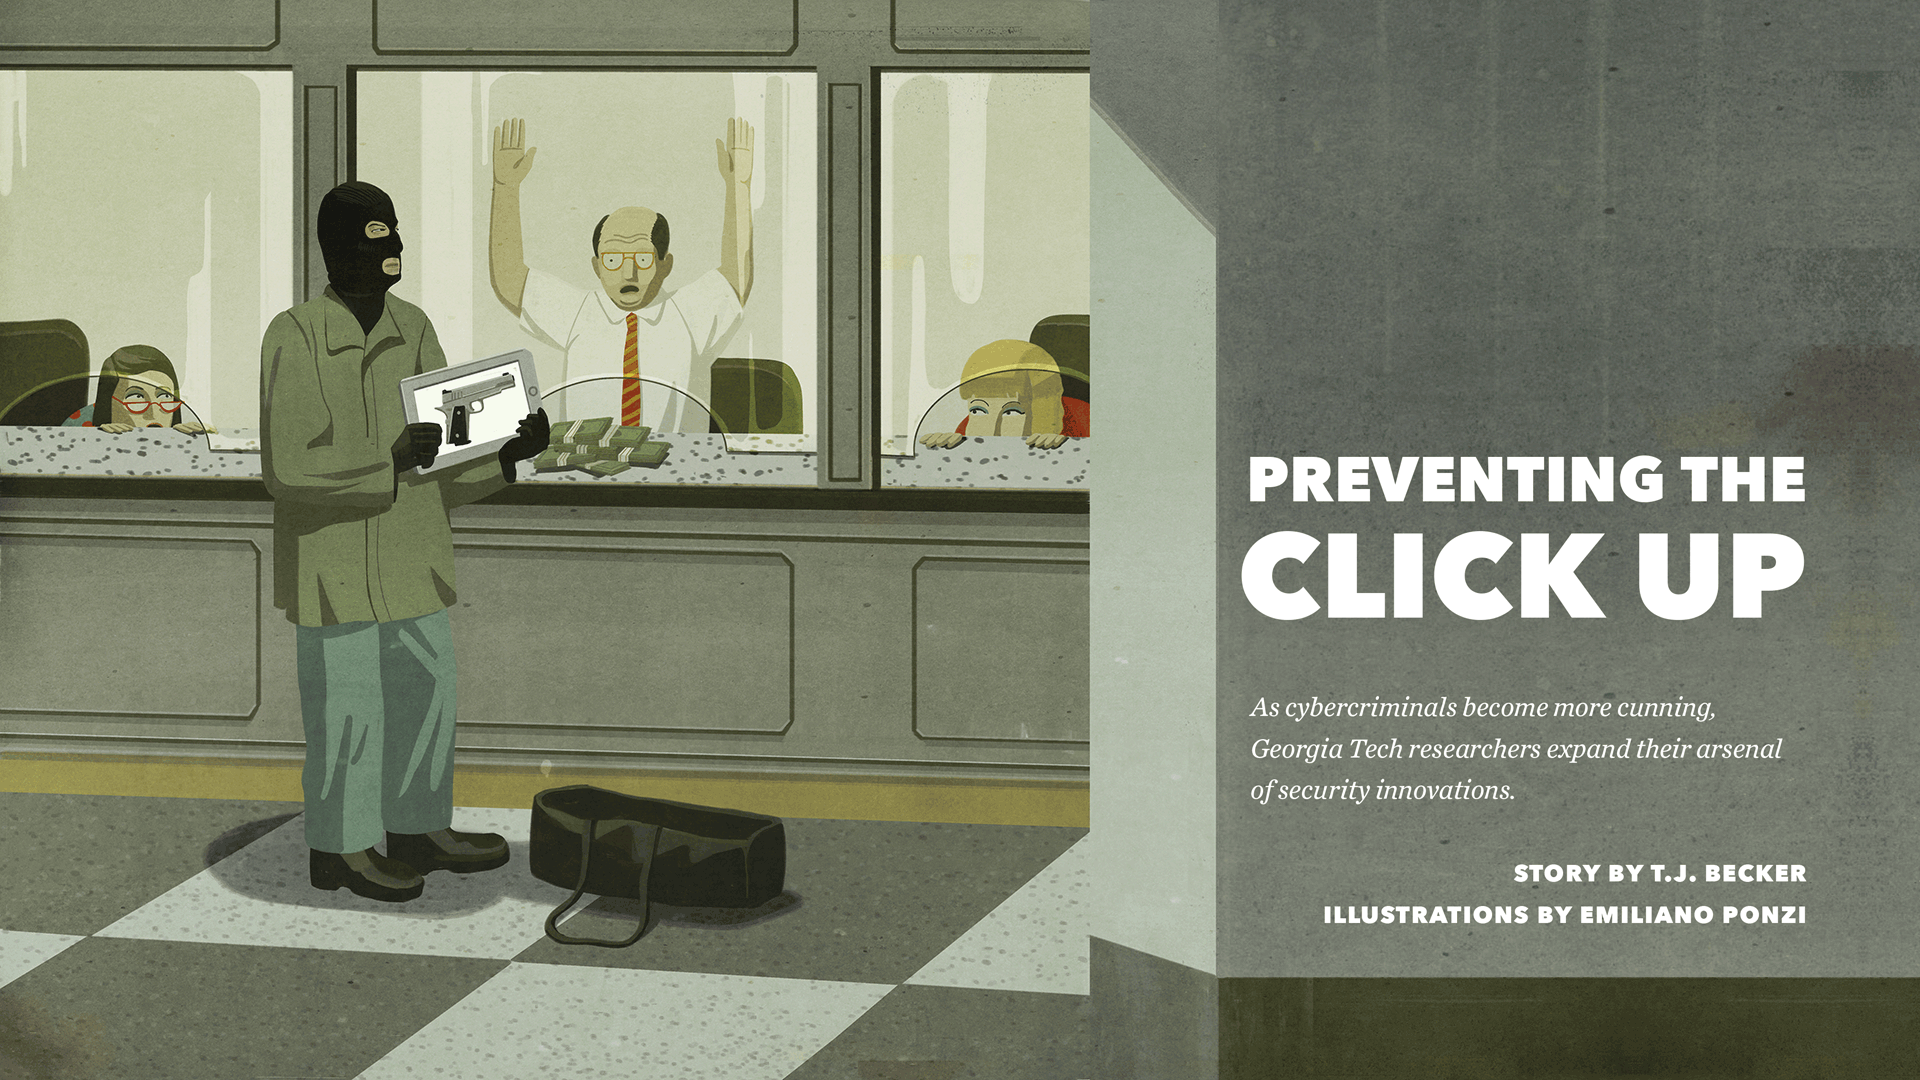 PREVENTING THE CLICK UP - As cybercriminals become more cunning, Georgia Tech researchers expand their arsenal of security innovations -STORY BY T.J. BECKER ILLUSTRATIONS BY EMILIANO PONZI